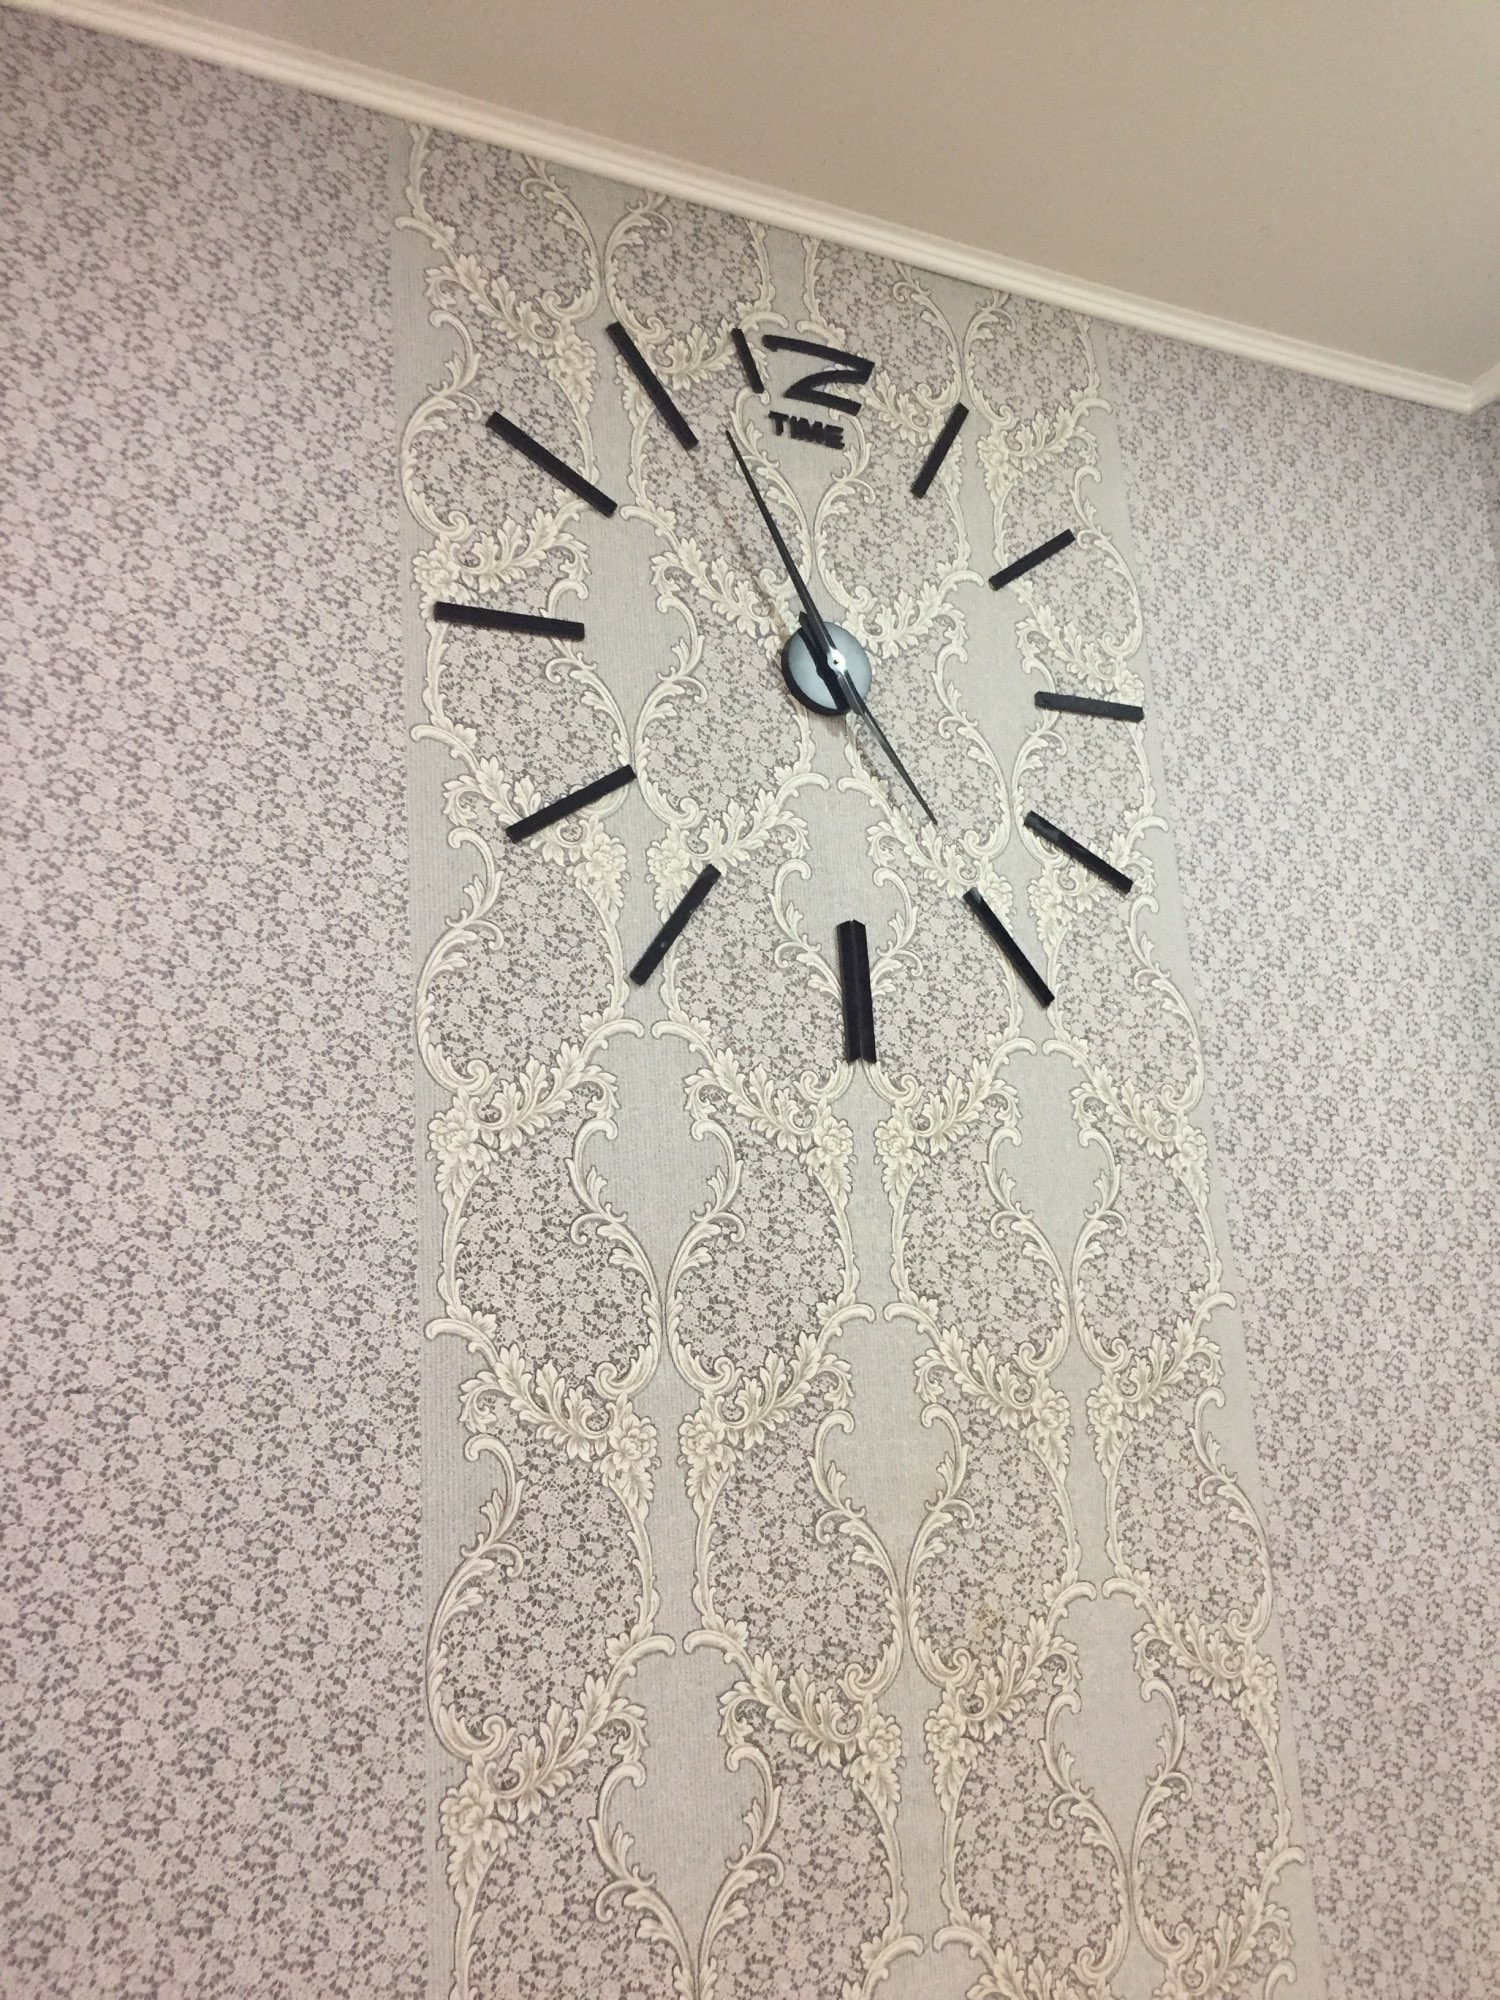 Modern Wall Clock for Decorating photo review